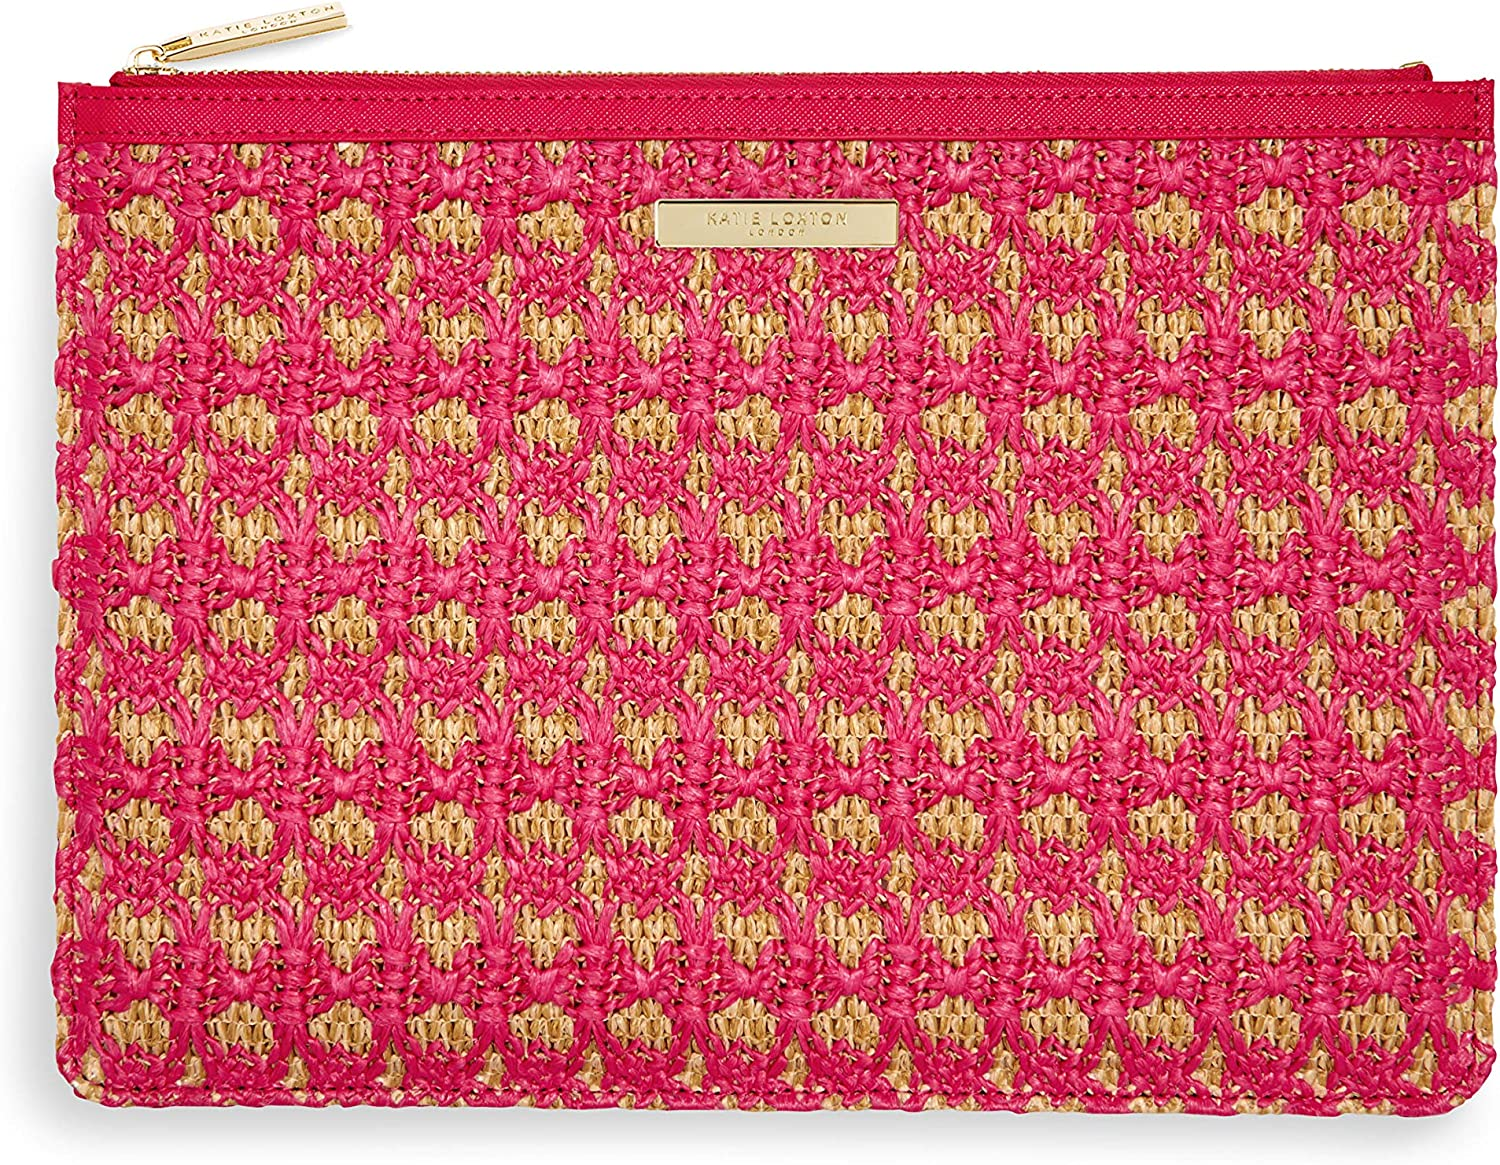 Katie Loxton Willow Woven Straw Womens Clutch Pouch in Natural and Hot Pink